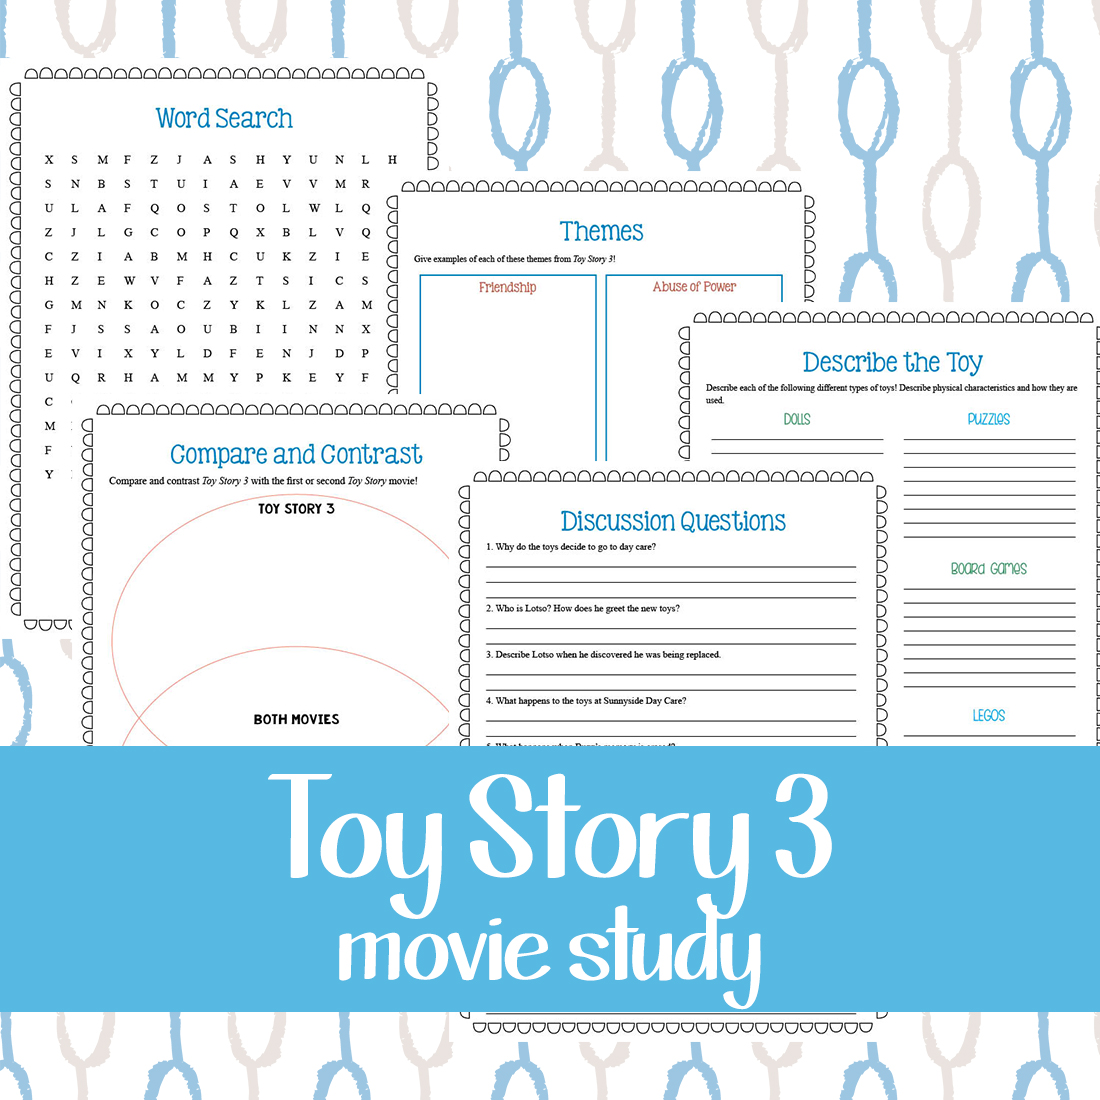 This movie study for Toy Story 3 is a fun way to add some additional learning to your movie day! This printable pack includes 5 pages of activities such as discussion questions, a word search page, description page, a compare/contrast page and a theme page for the movie. #moviestudy #movies #ToyStory3 #iaydhomeschoolers